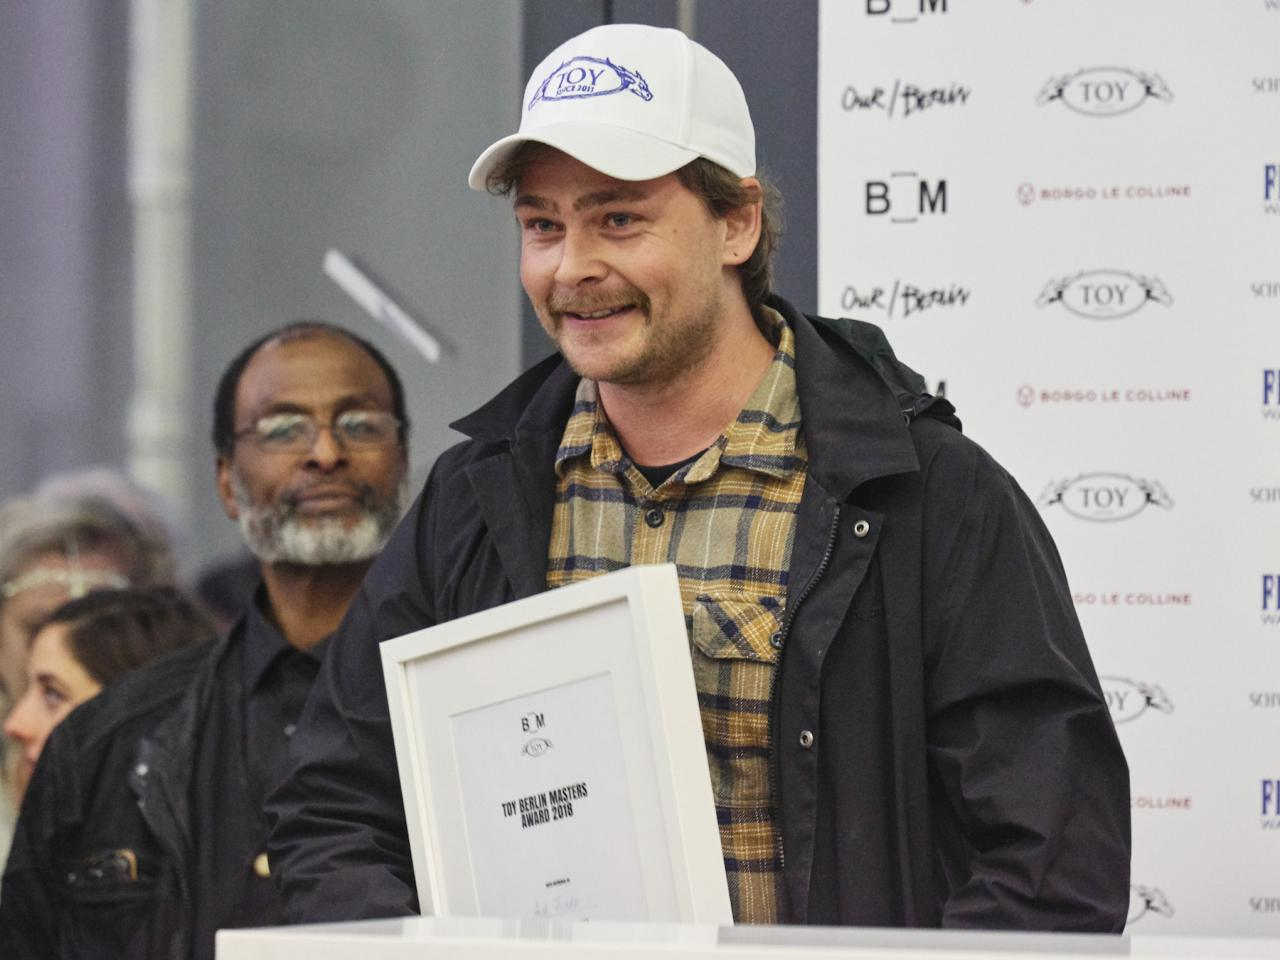 Andi Fischer at the ceremony of theToy Berlin Masters Award 2018